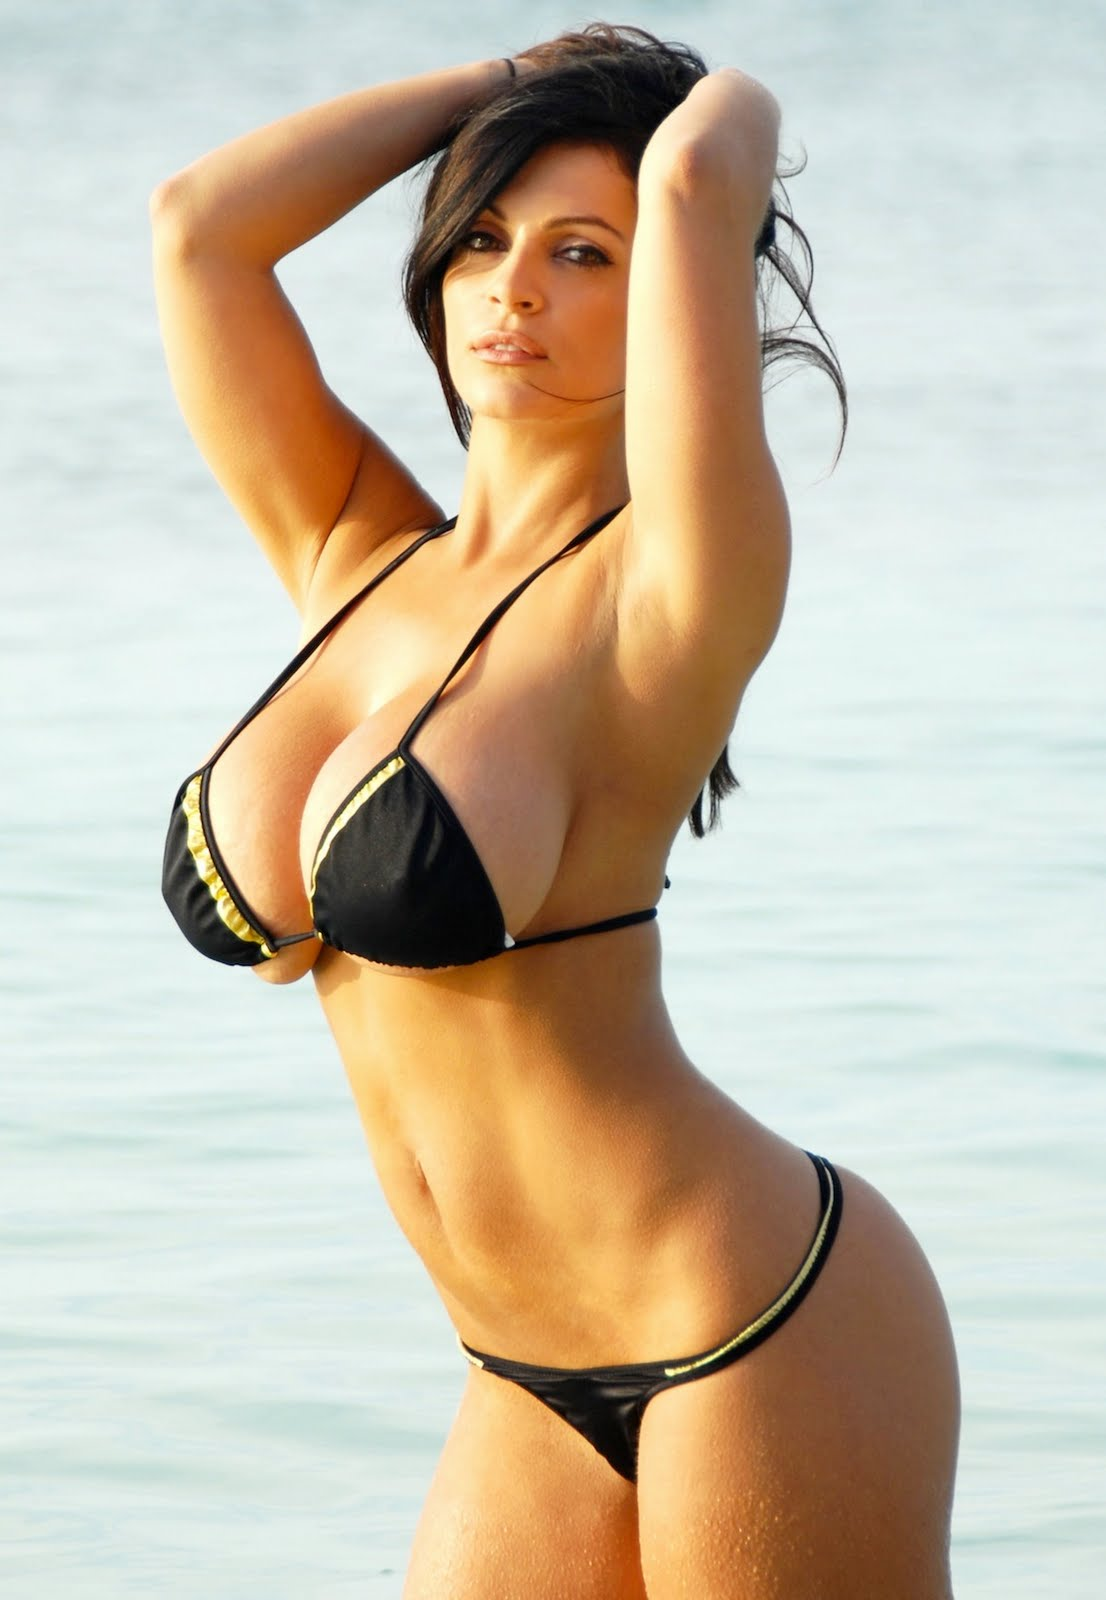 Denise Milani Denise Milani Photo 28735832 Fanpop